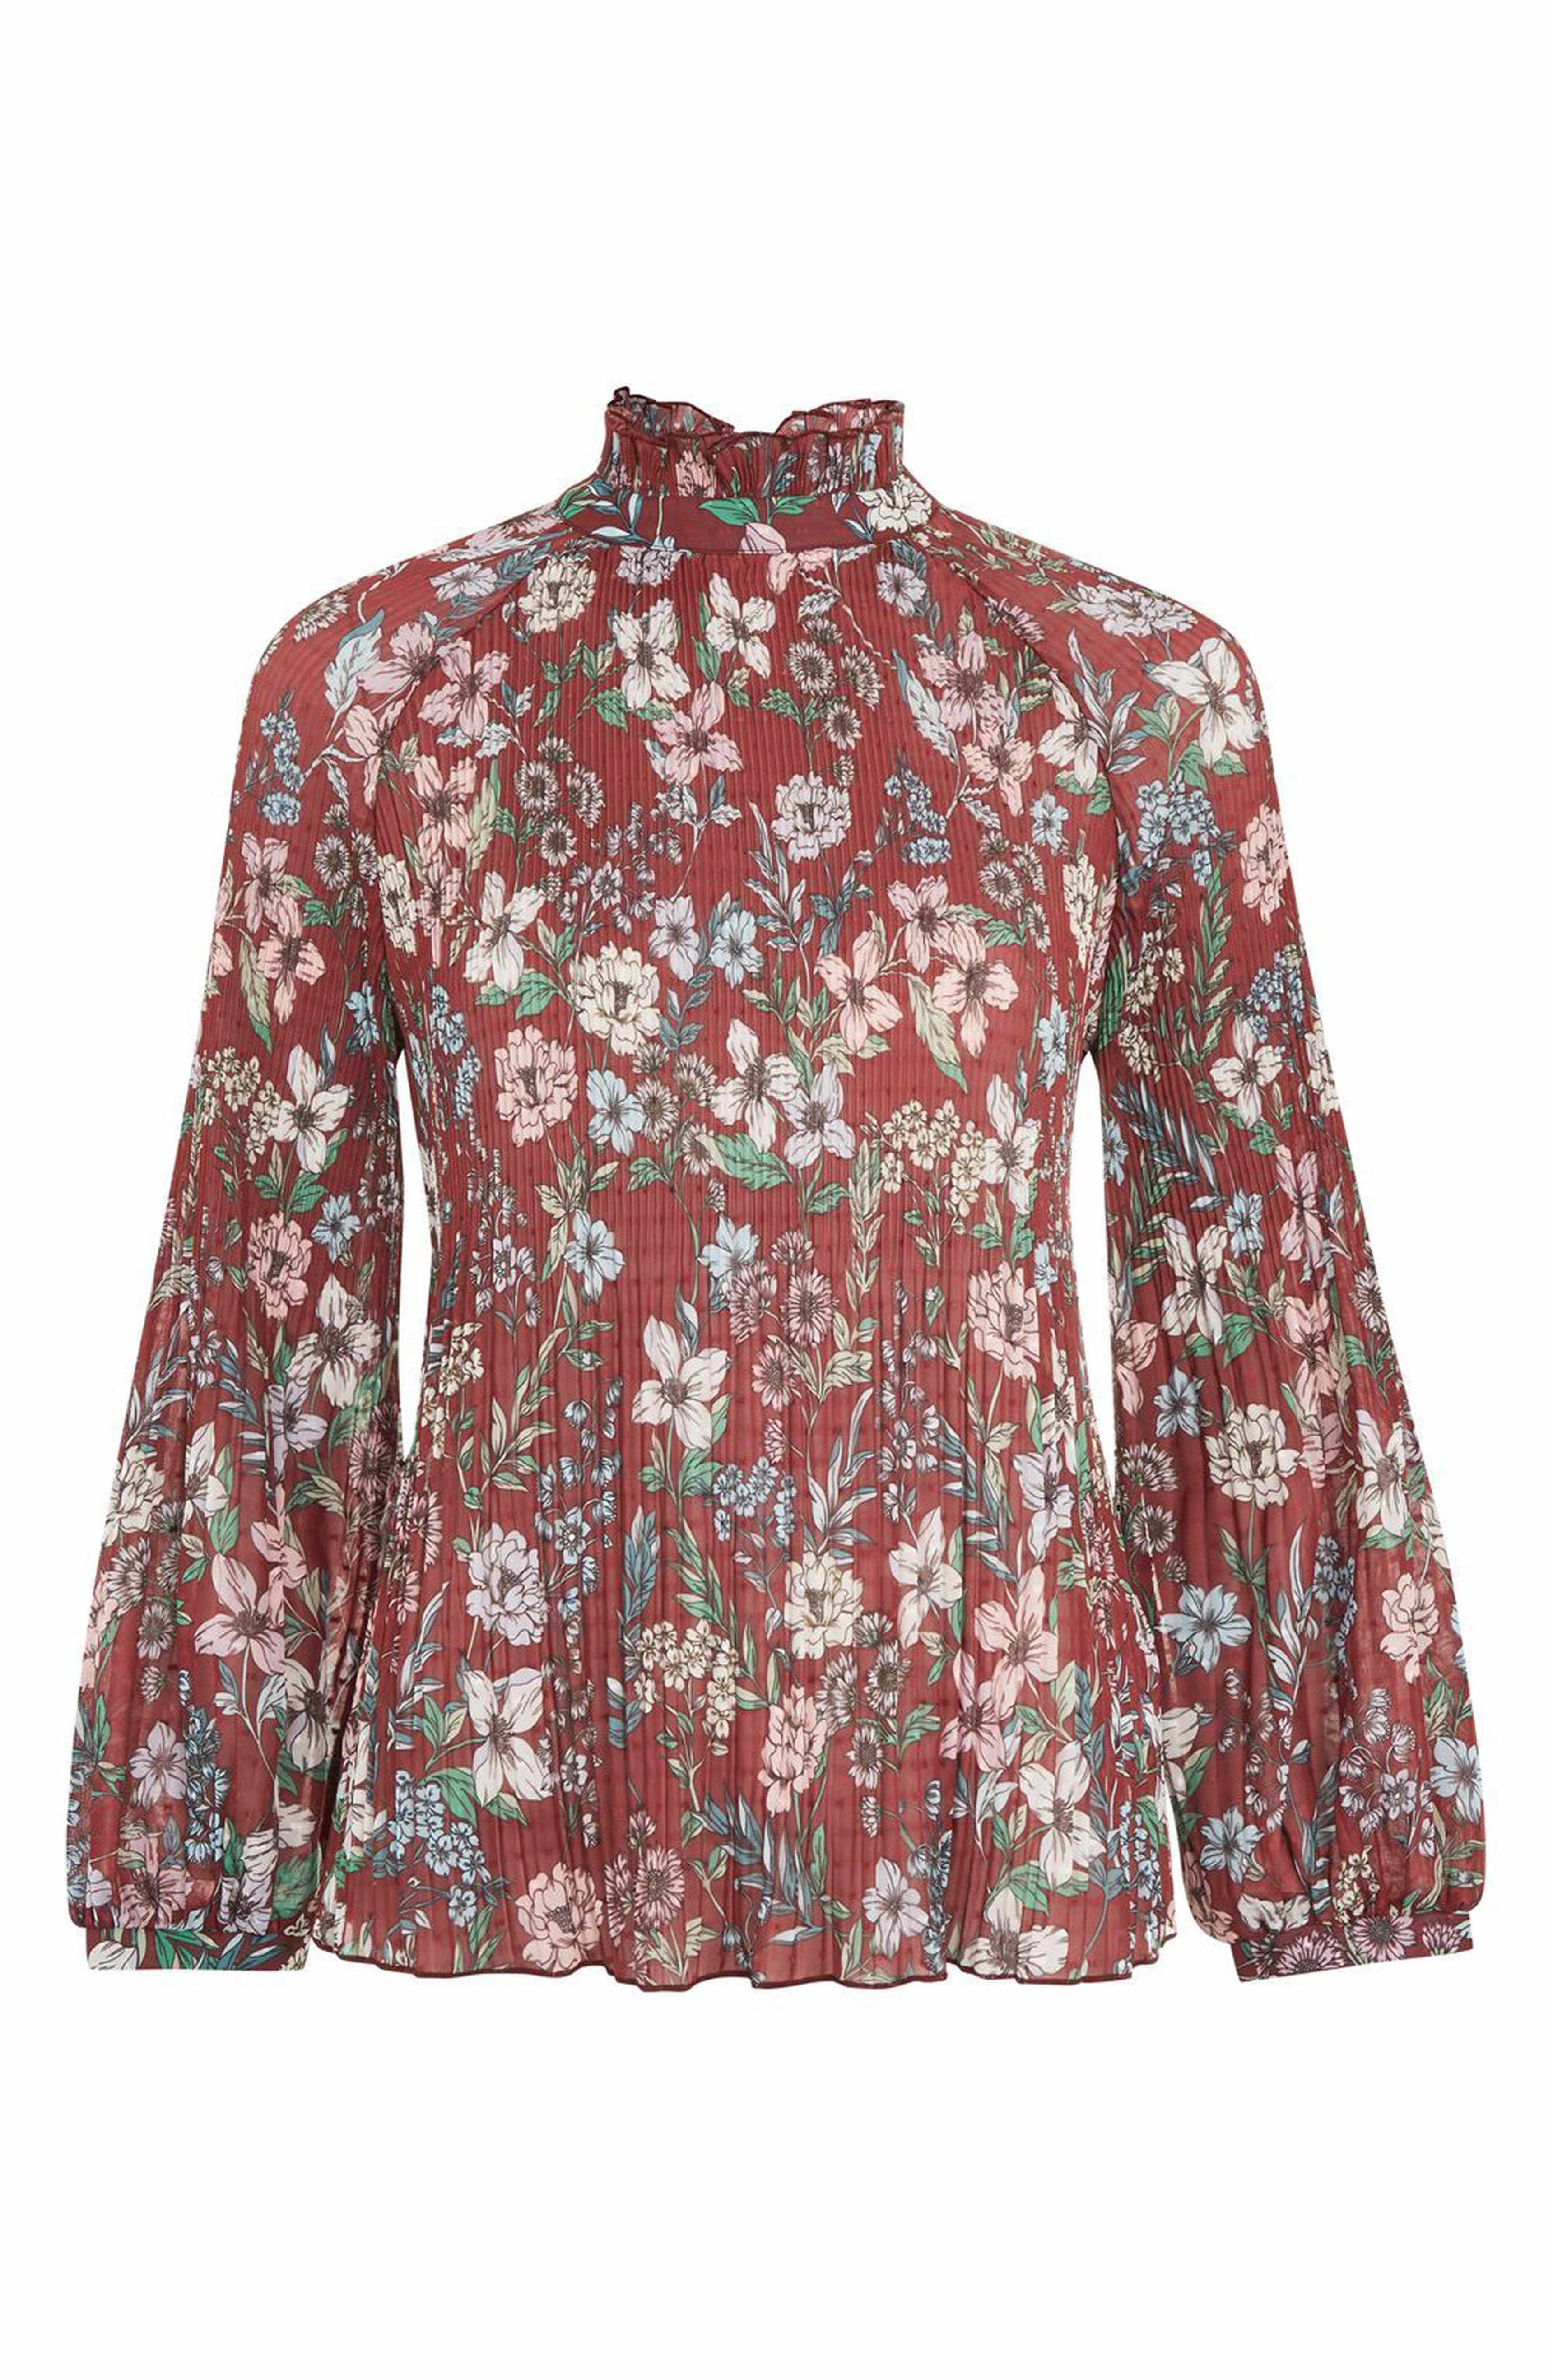 677c99bfaaf Main Image - Topshop Floral Pleat Tunic Blouse